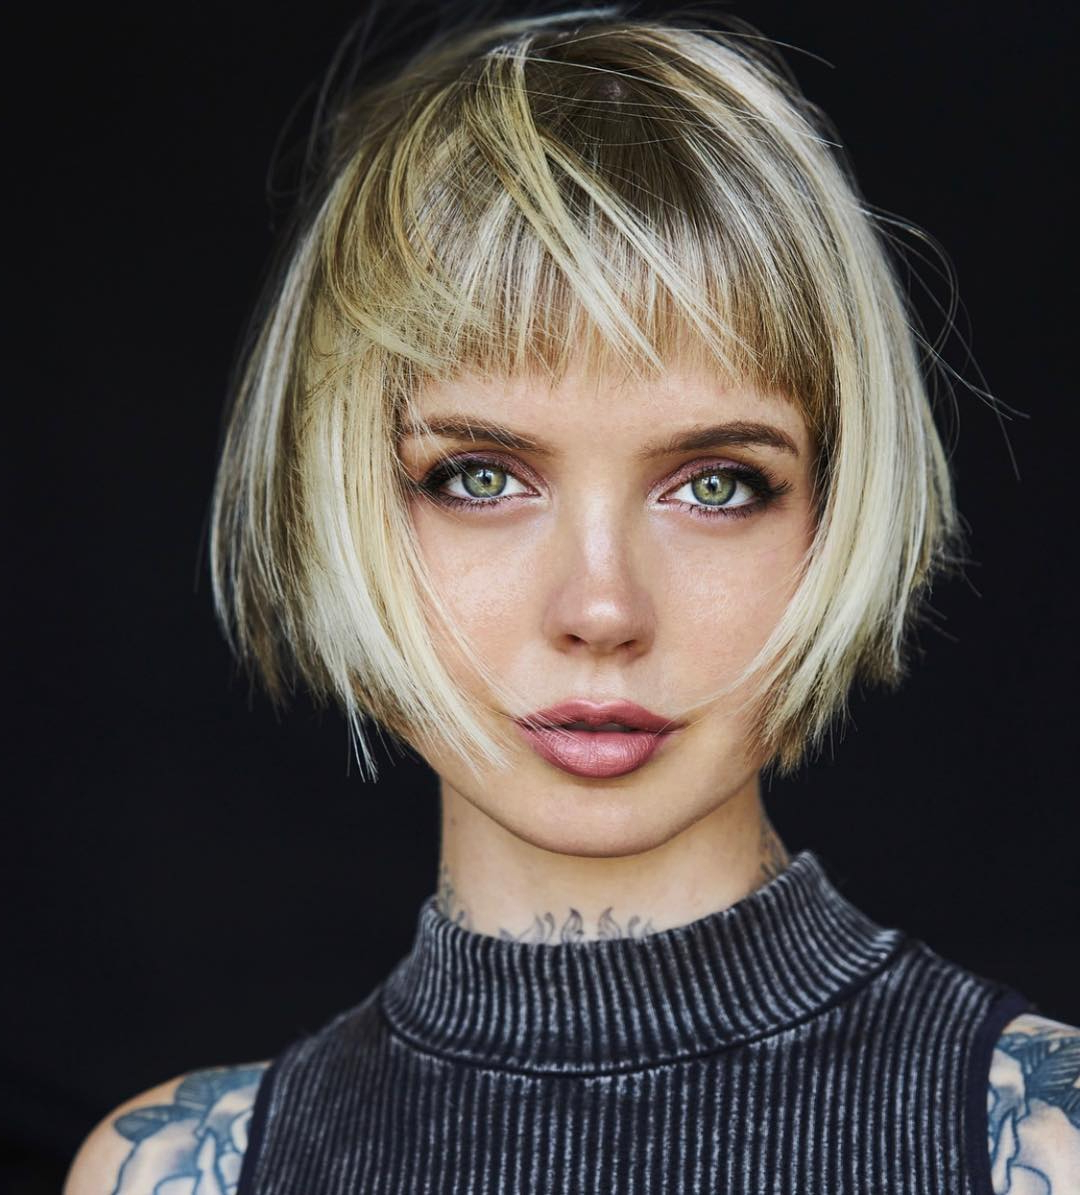 10 Trendy Messy Bob Hairstyles And Haircuts, 2020 Female In Short Bob Hairstyles With Cropped Bangs (View 1 of 20)